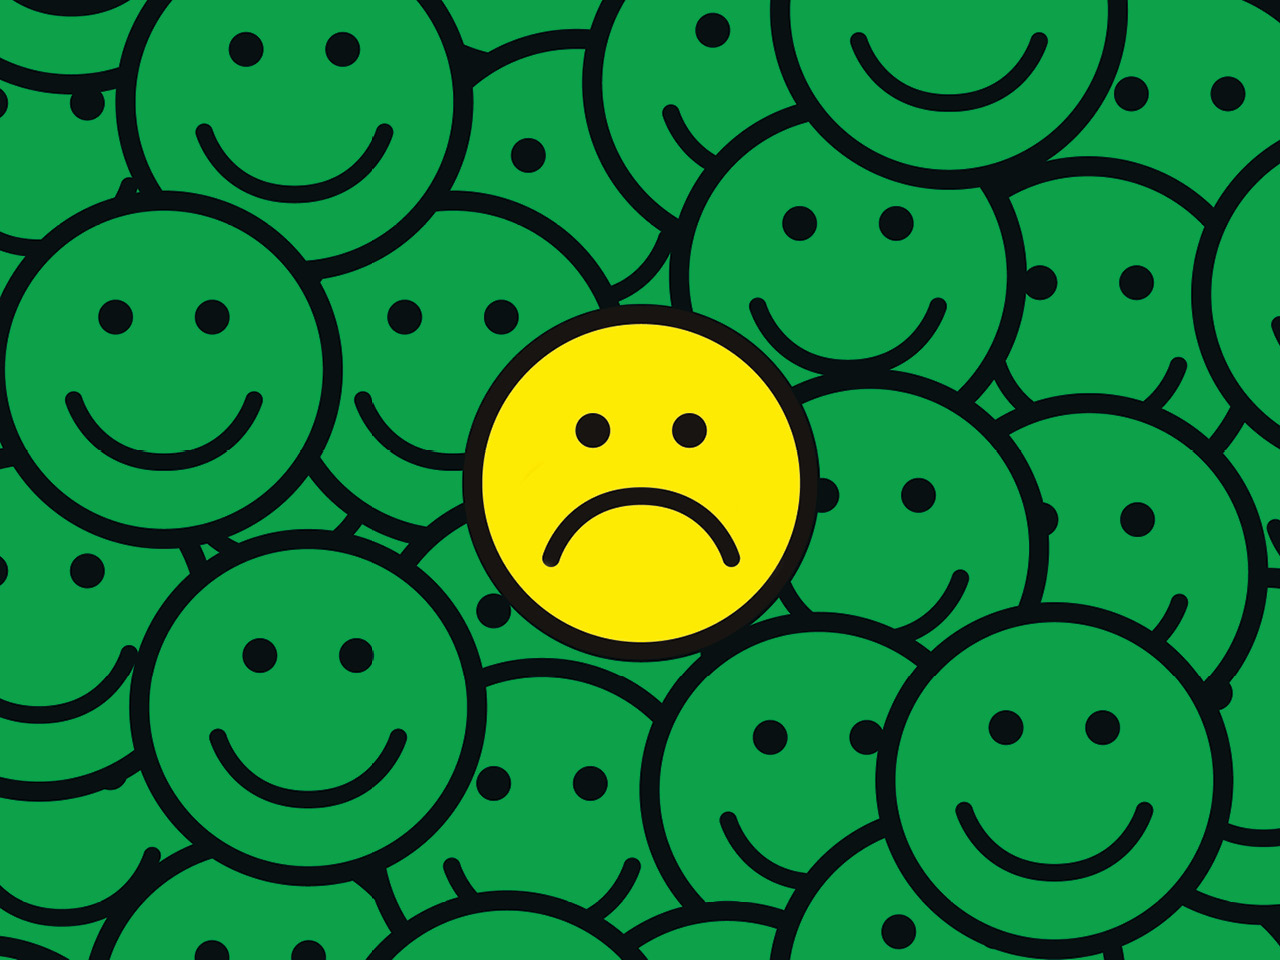 An illustration of one sad face in a pile of happy faces.